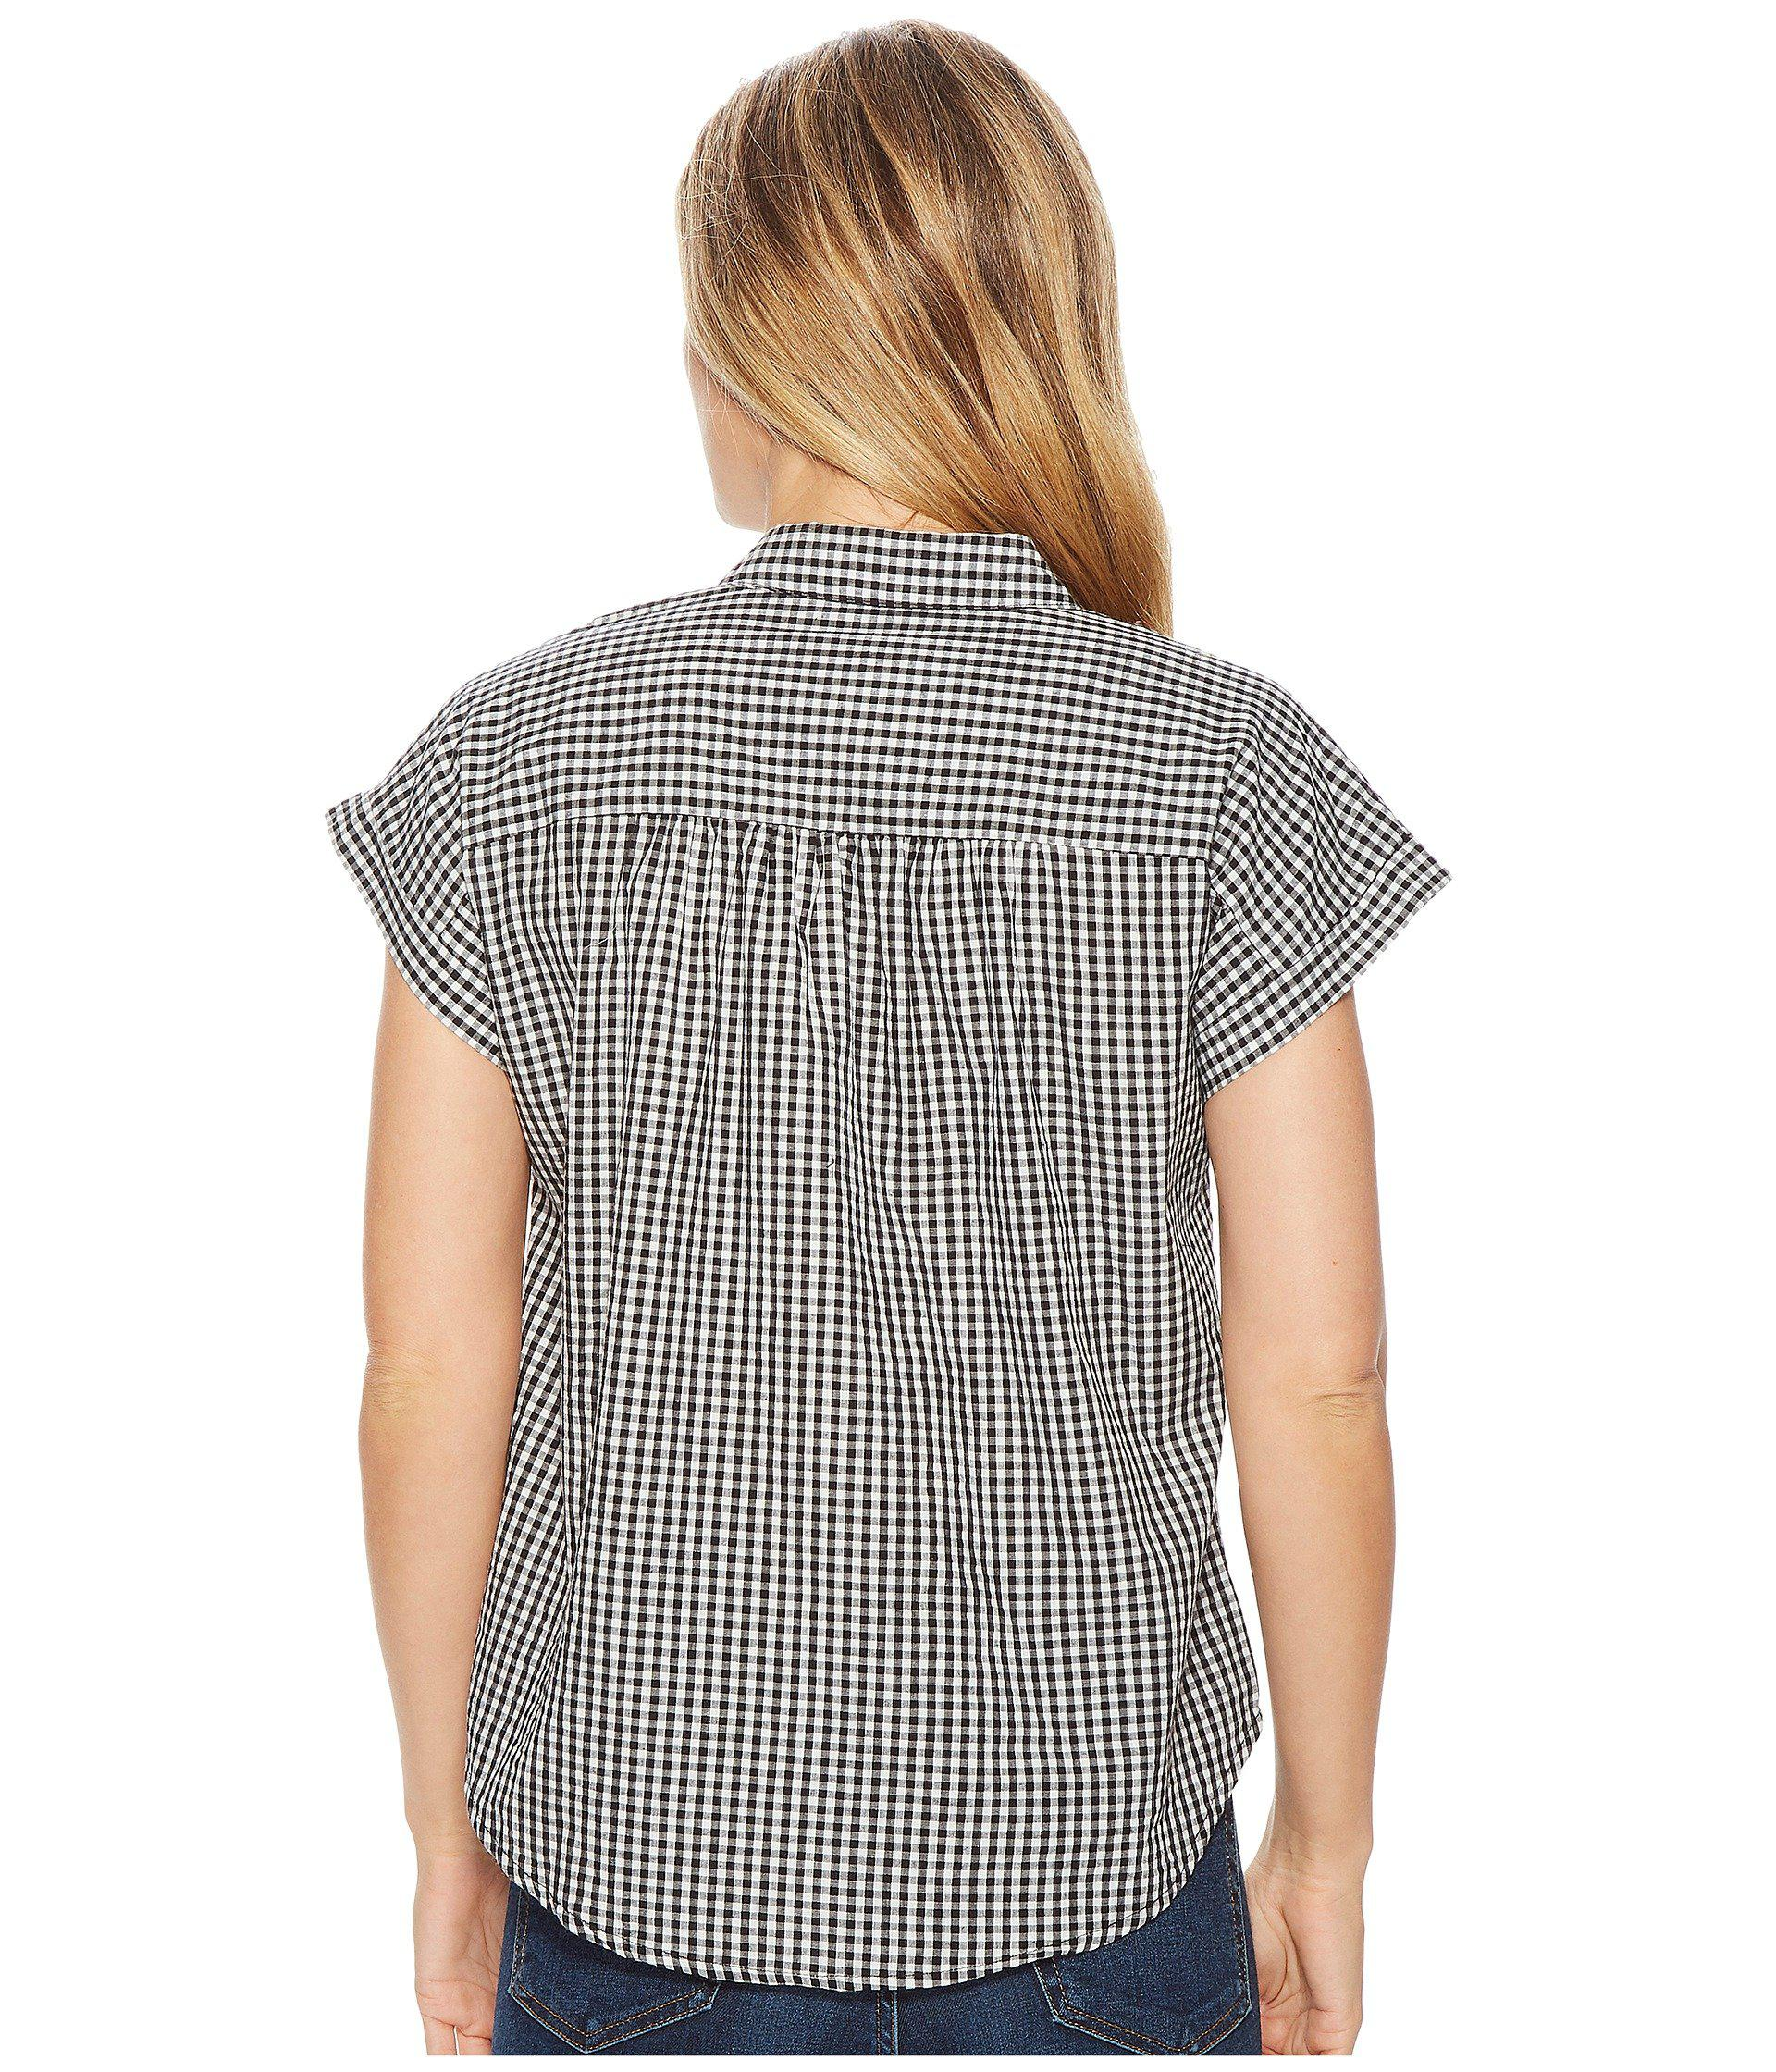 009db5ecbed4a Lyst - Tolani Adeline Top in Gray